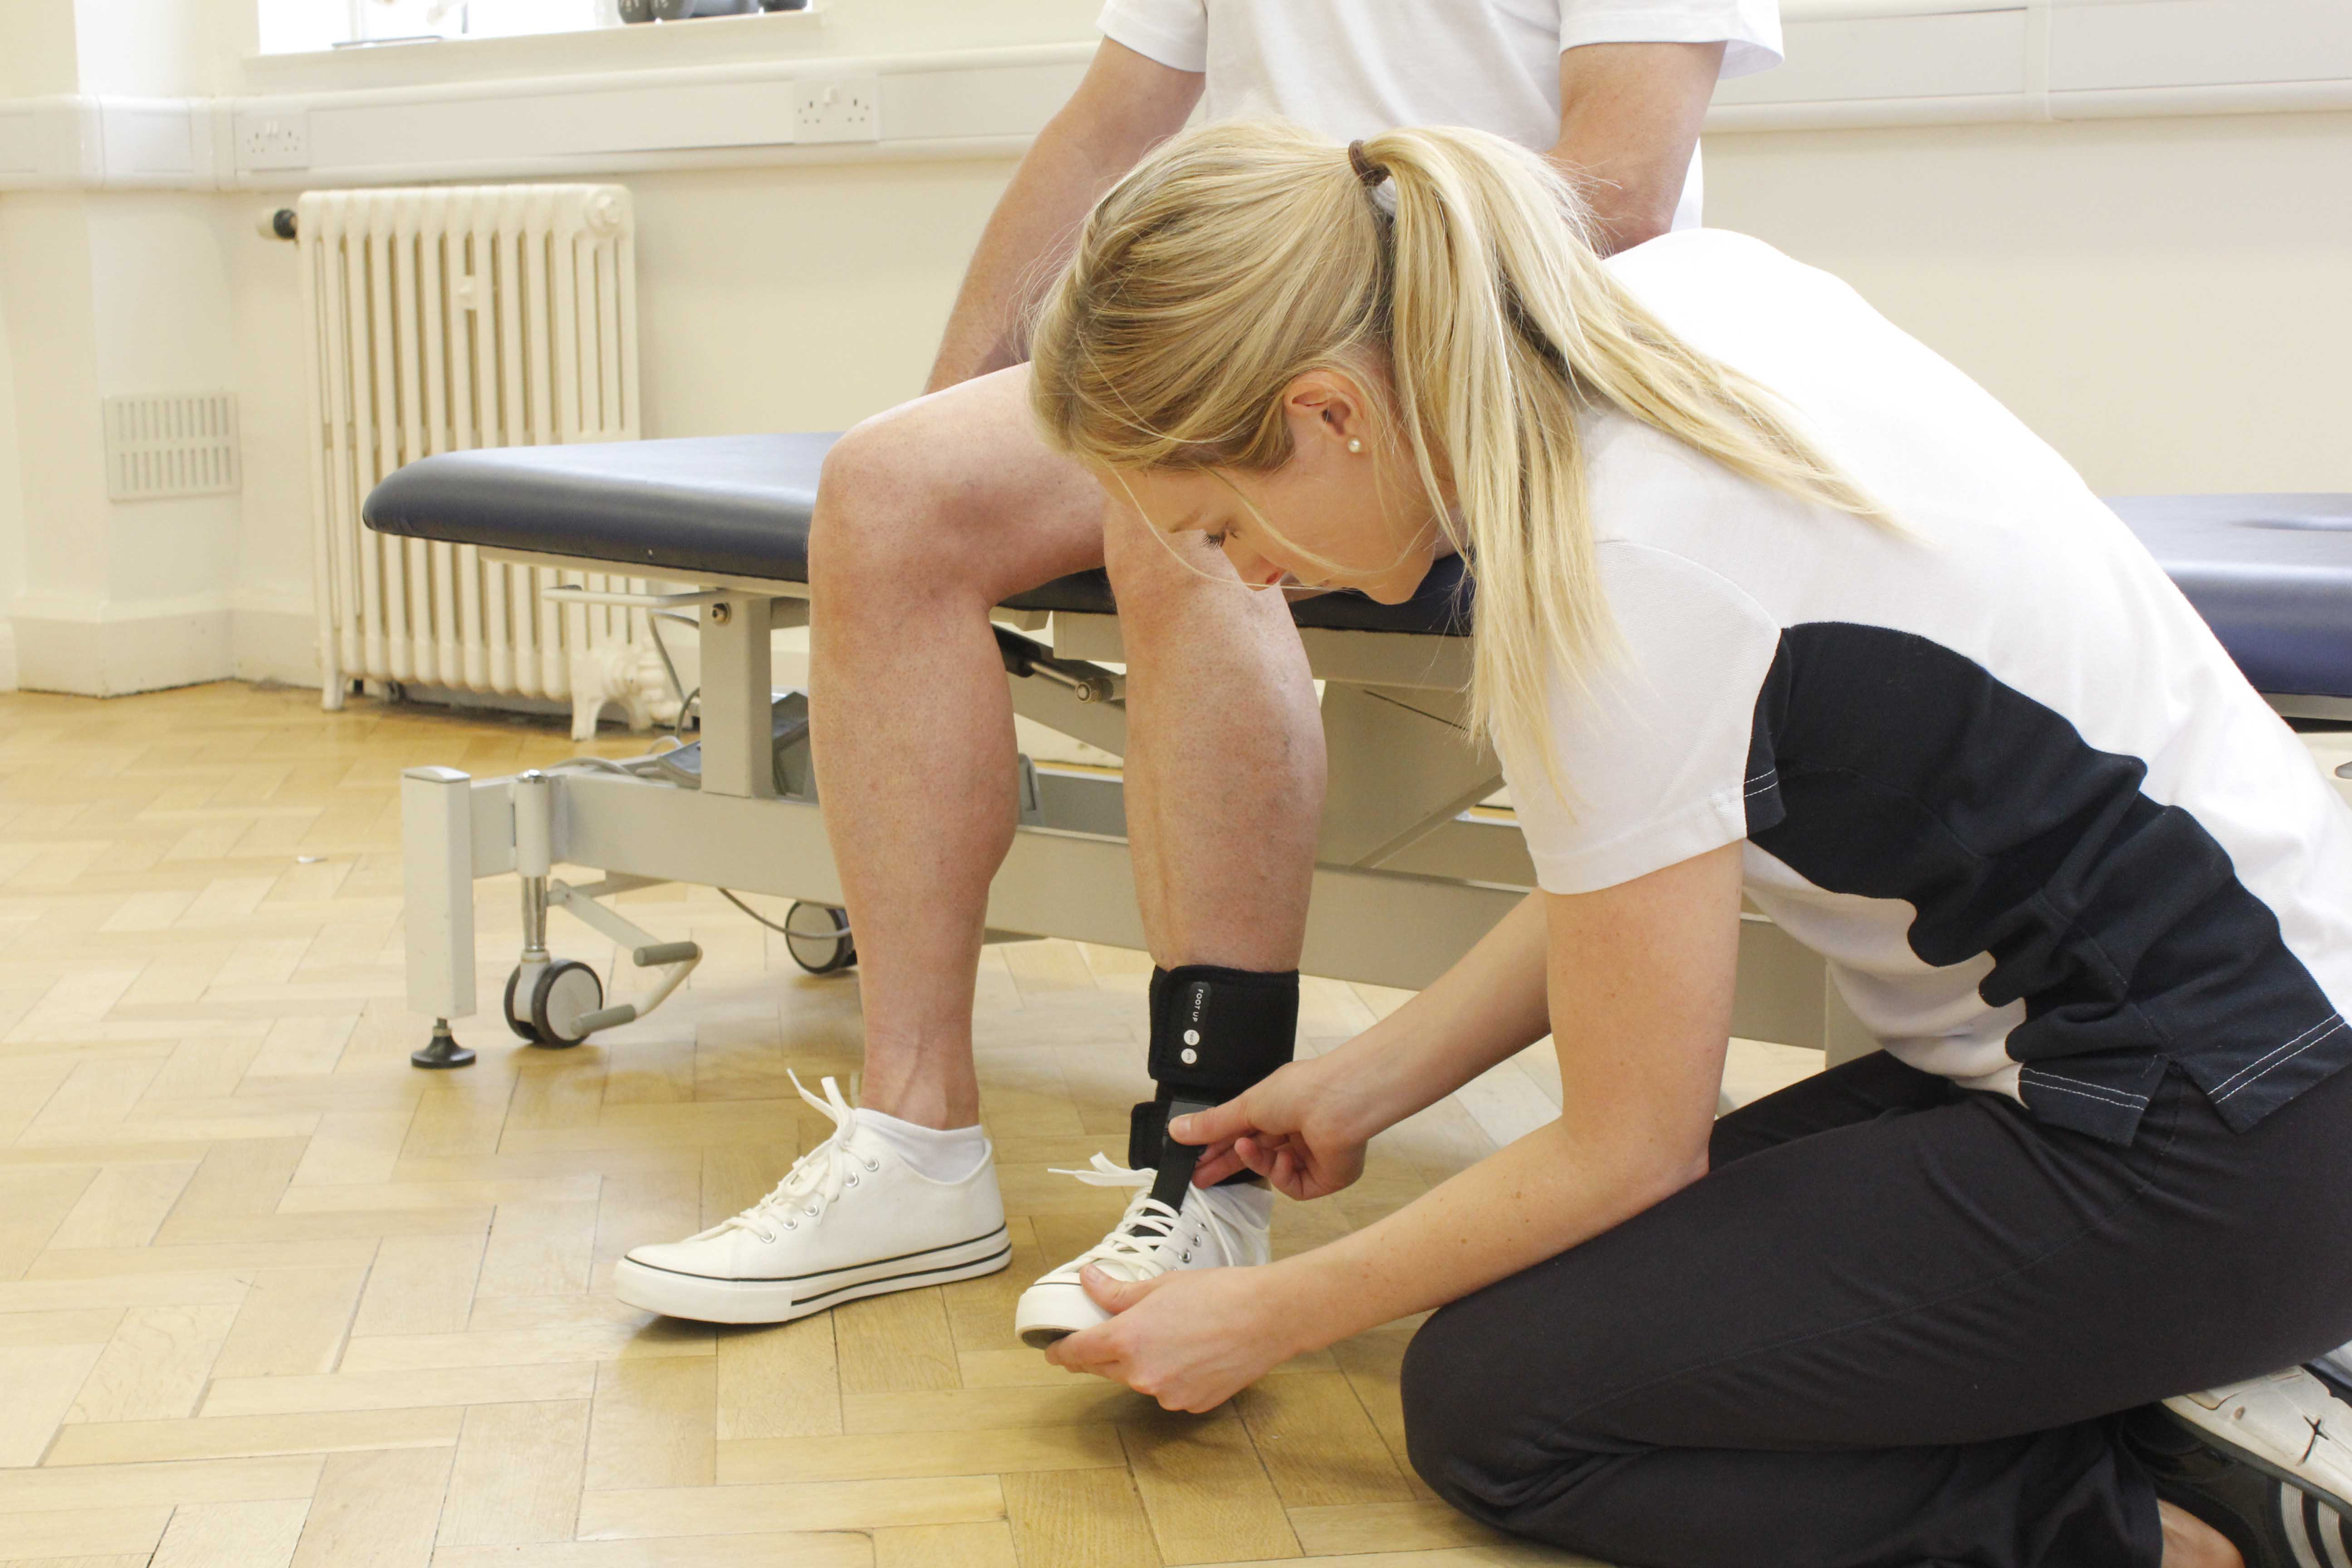 Physiotherapist fitting an ankle orthotic to prevent foot drop during mobilisation